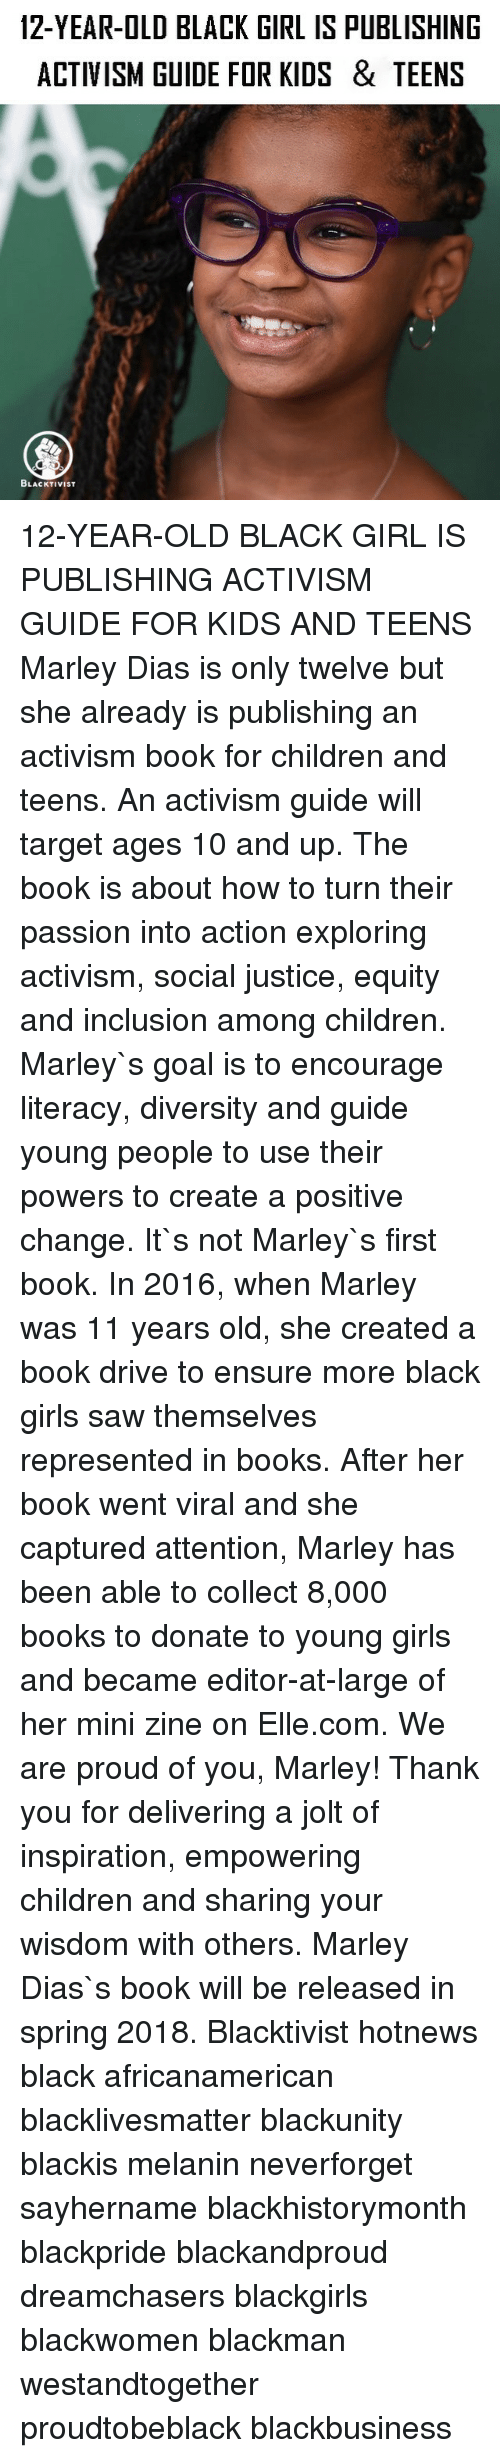 Black Lives Matter, Books, and Children: 12-YEAR-OLD BLACK GIRL IS PUBLISHING  ACTIVISM GUIDE FOR KIDS & TEENS  BLACKTIVIST 12-YEAR-OLD BLACK GIRL IS PUBLISHING ACTIVISM GUIDE FOR KIDS AND TEENS Marley Dias is only twelve but she already is publishing an activism book for children and teens. An activism guide will target ages 10 and up. The book is about how to turn their passion into action exploring activism, social justice, equity and inclusion among children. Marley`s goal is to encourage literacy, diversity and guide young people to use their powers to create a positive change. It`s not Marley`s first book. In 2016, when Marley was 11 years old, she created a book drive to ensure more black girls saw themselves represented in books. After her book went viral and she captured attention, Marley has been able to collect 8,000 books to donate to young girls and became editor-at-large of her mini zine on Elle.com. We are proud of you, Marley! Thank you for delivering a jolt of inspiration, empowering children and sharing your wisdom with others. Marley Dias`s book will be released in spring 2018. Blacktivist hotnews black africanamerican blacklivesmatter blackunity blackis melanin neverforget sayhername blackhistorymonth blackpride blackandproud dreamchasers blackgirls blackwomen blackman westandtogether proudtobeblack blackbusiness